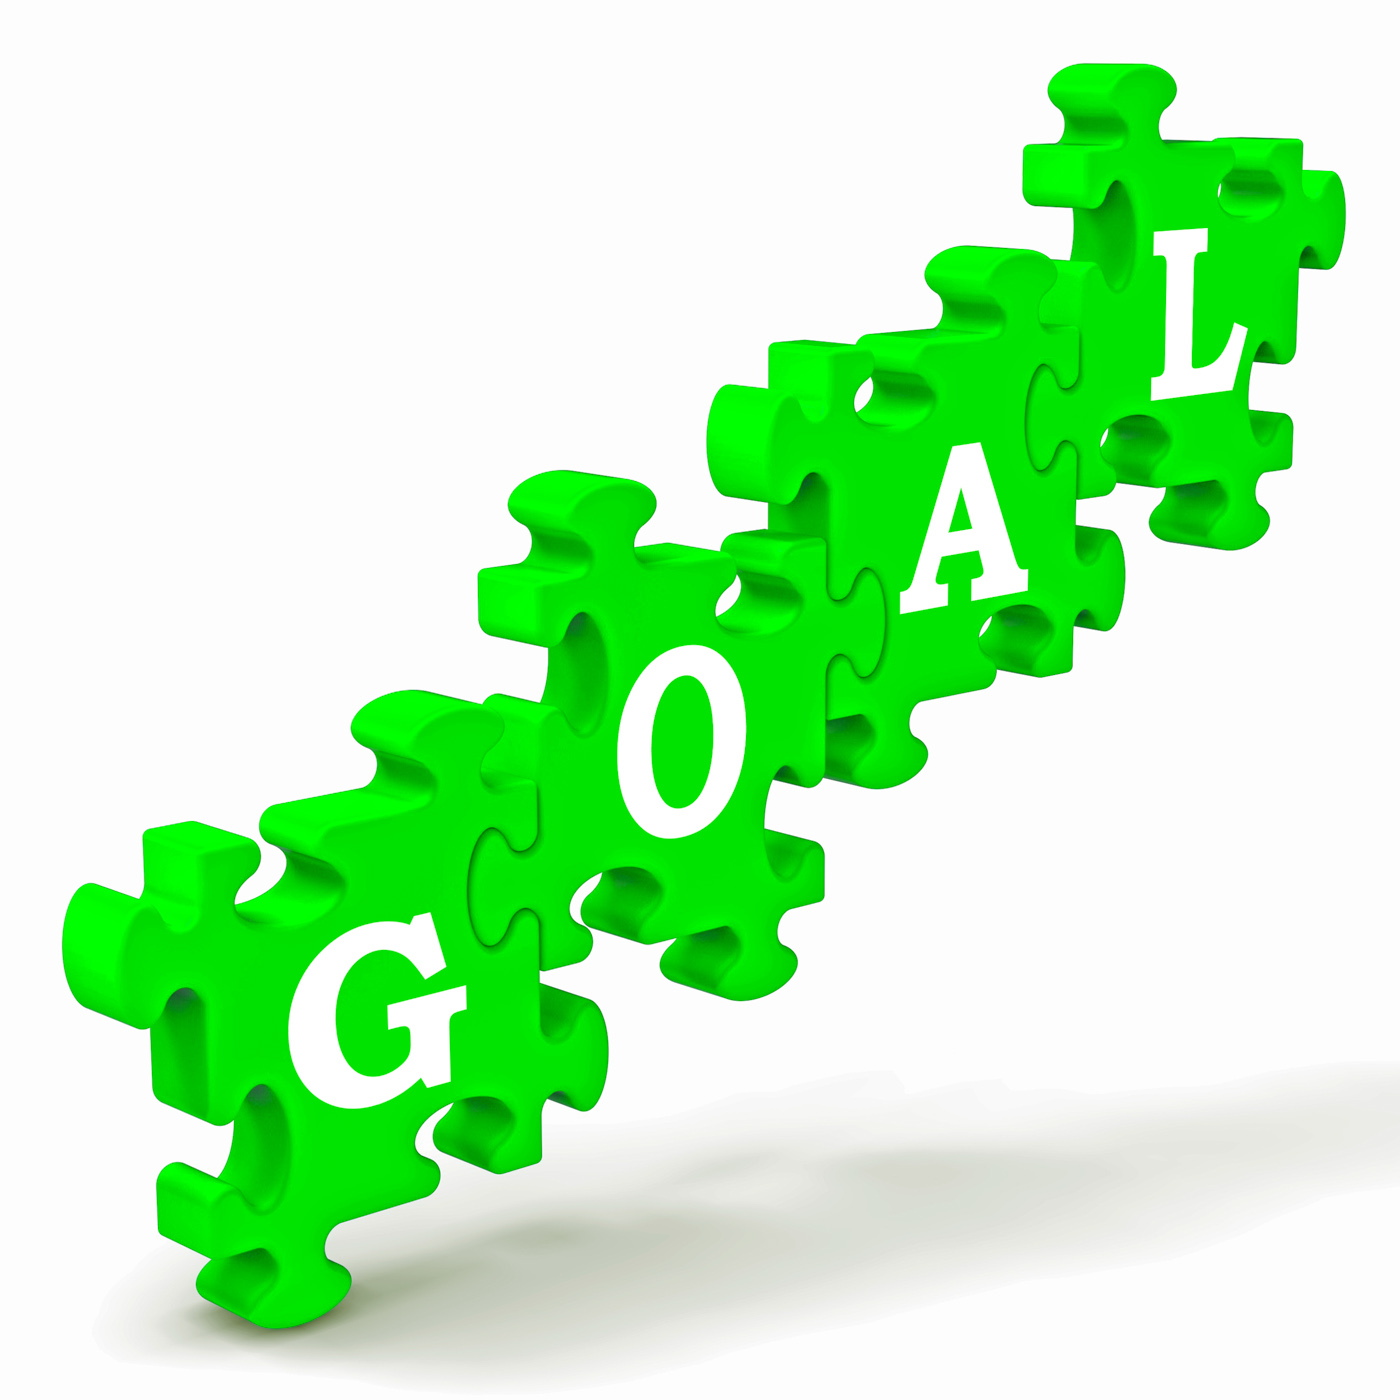 Goal Puzzle Shows Business Targets And Objectives, Aims, Motivation, Targets, Targeting, HQ Photo